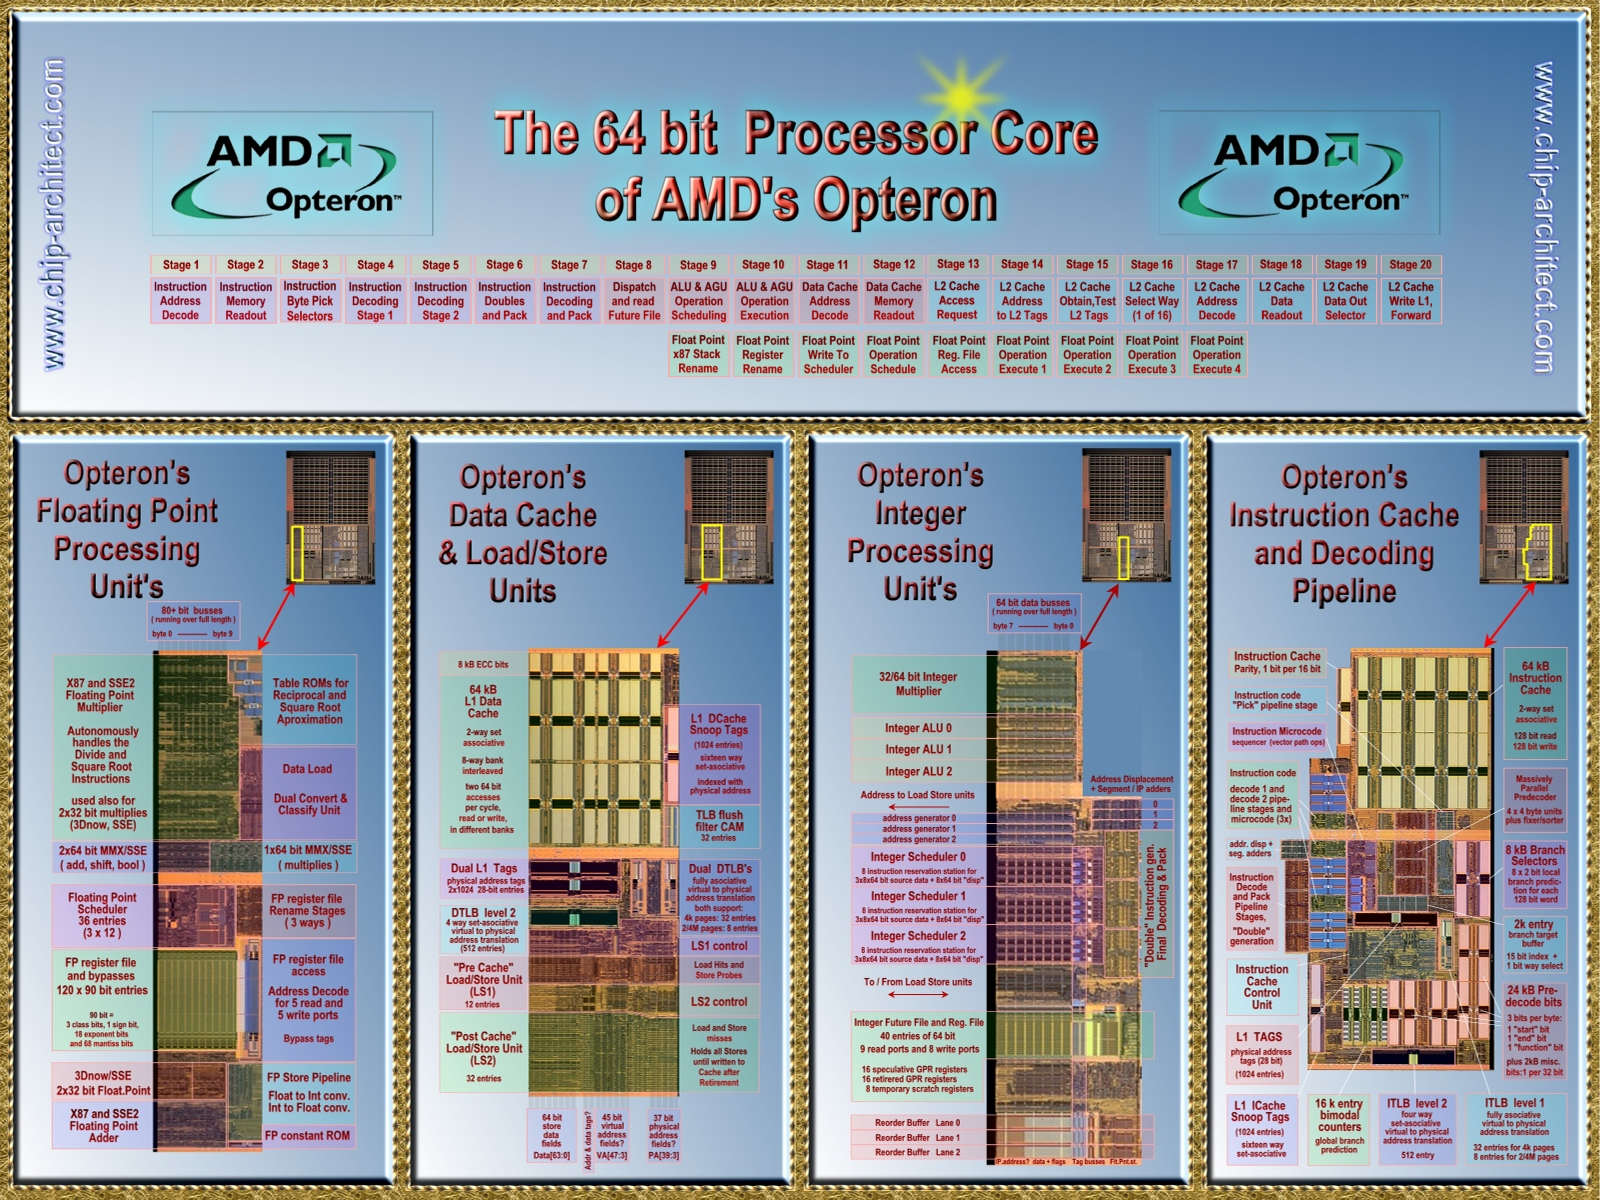 http://www.chip-architect.org/news/Opteron_1600x1200.jpg